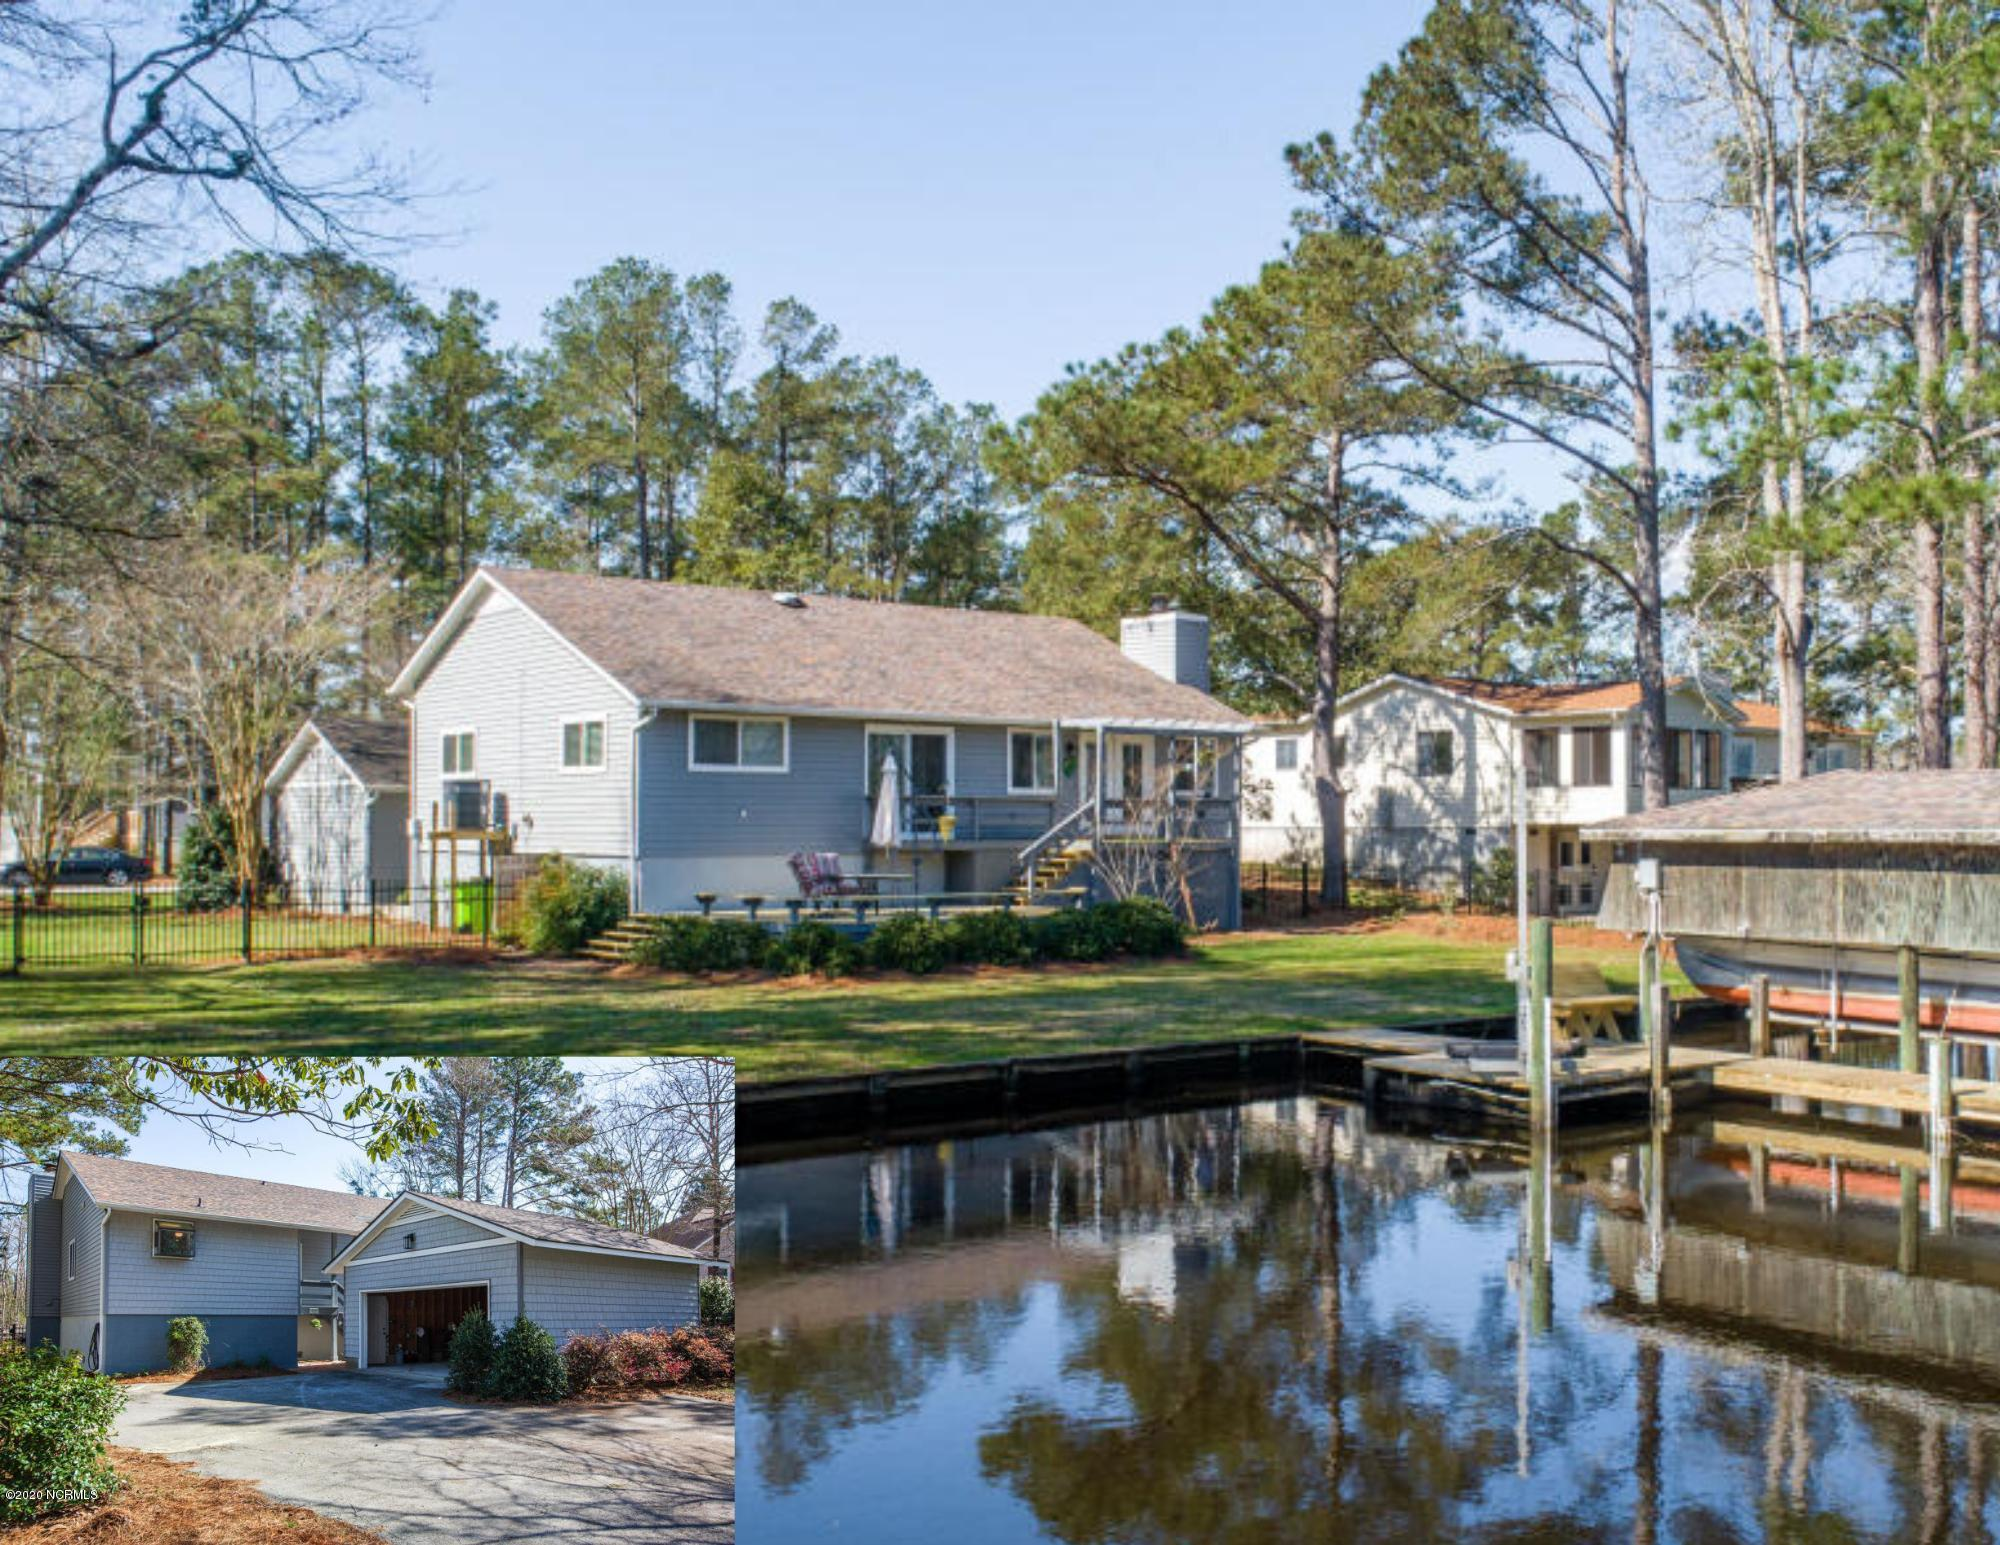 108 Bowline Road, New Bern, North Carolina 28562, 3 Bedrooms Bedrooms, 5 Rooms Rooms,2 BathroomsBathrooms,Single family residence,For sale,Bowline,100210078